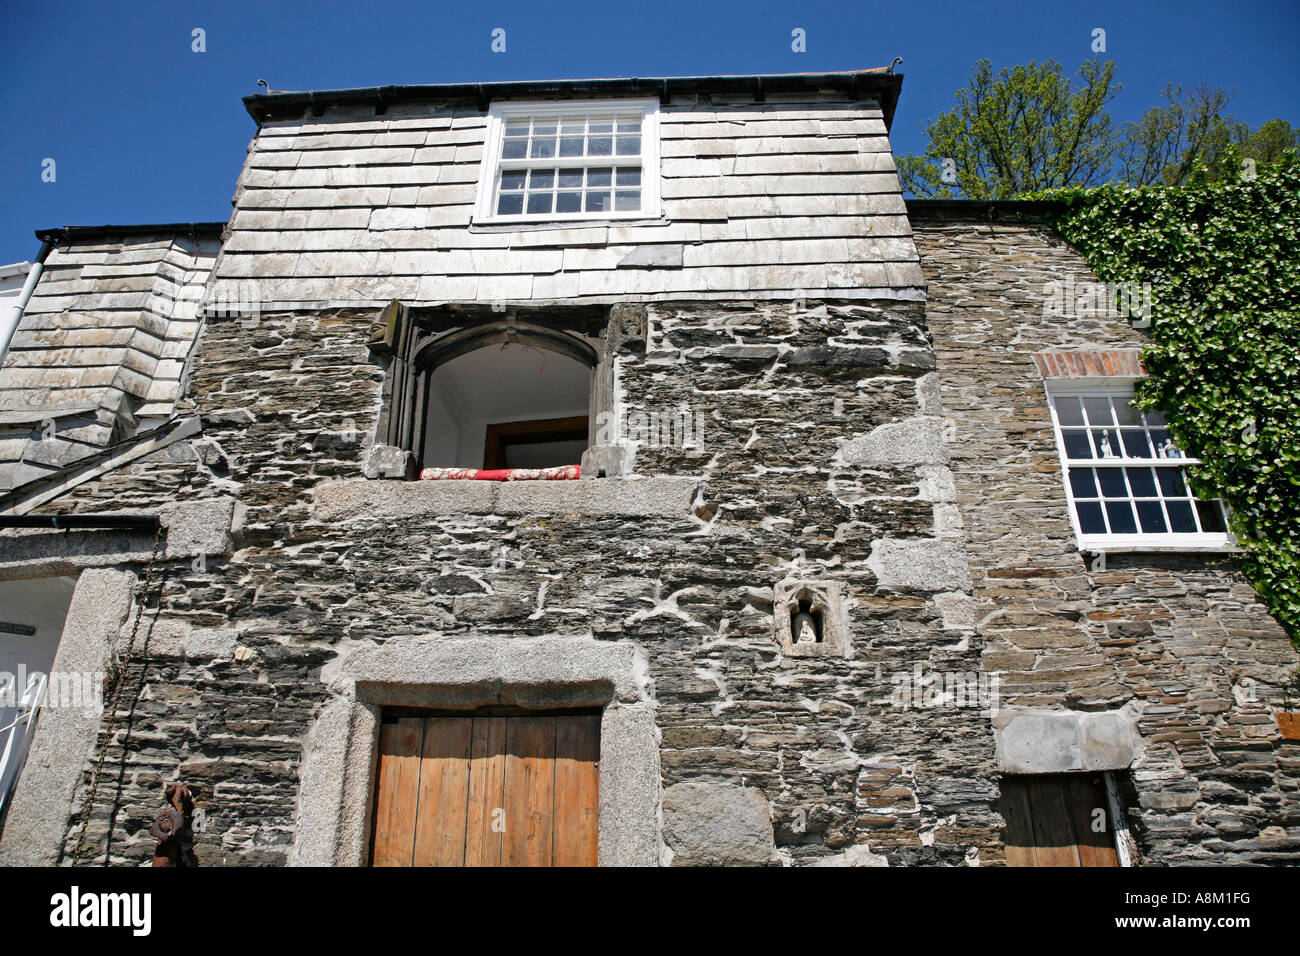 The Oldest House In Padstow Cornwall England UK Europe Stock